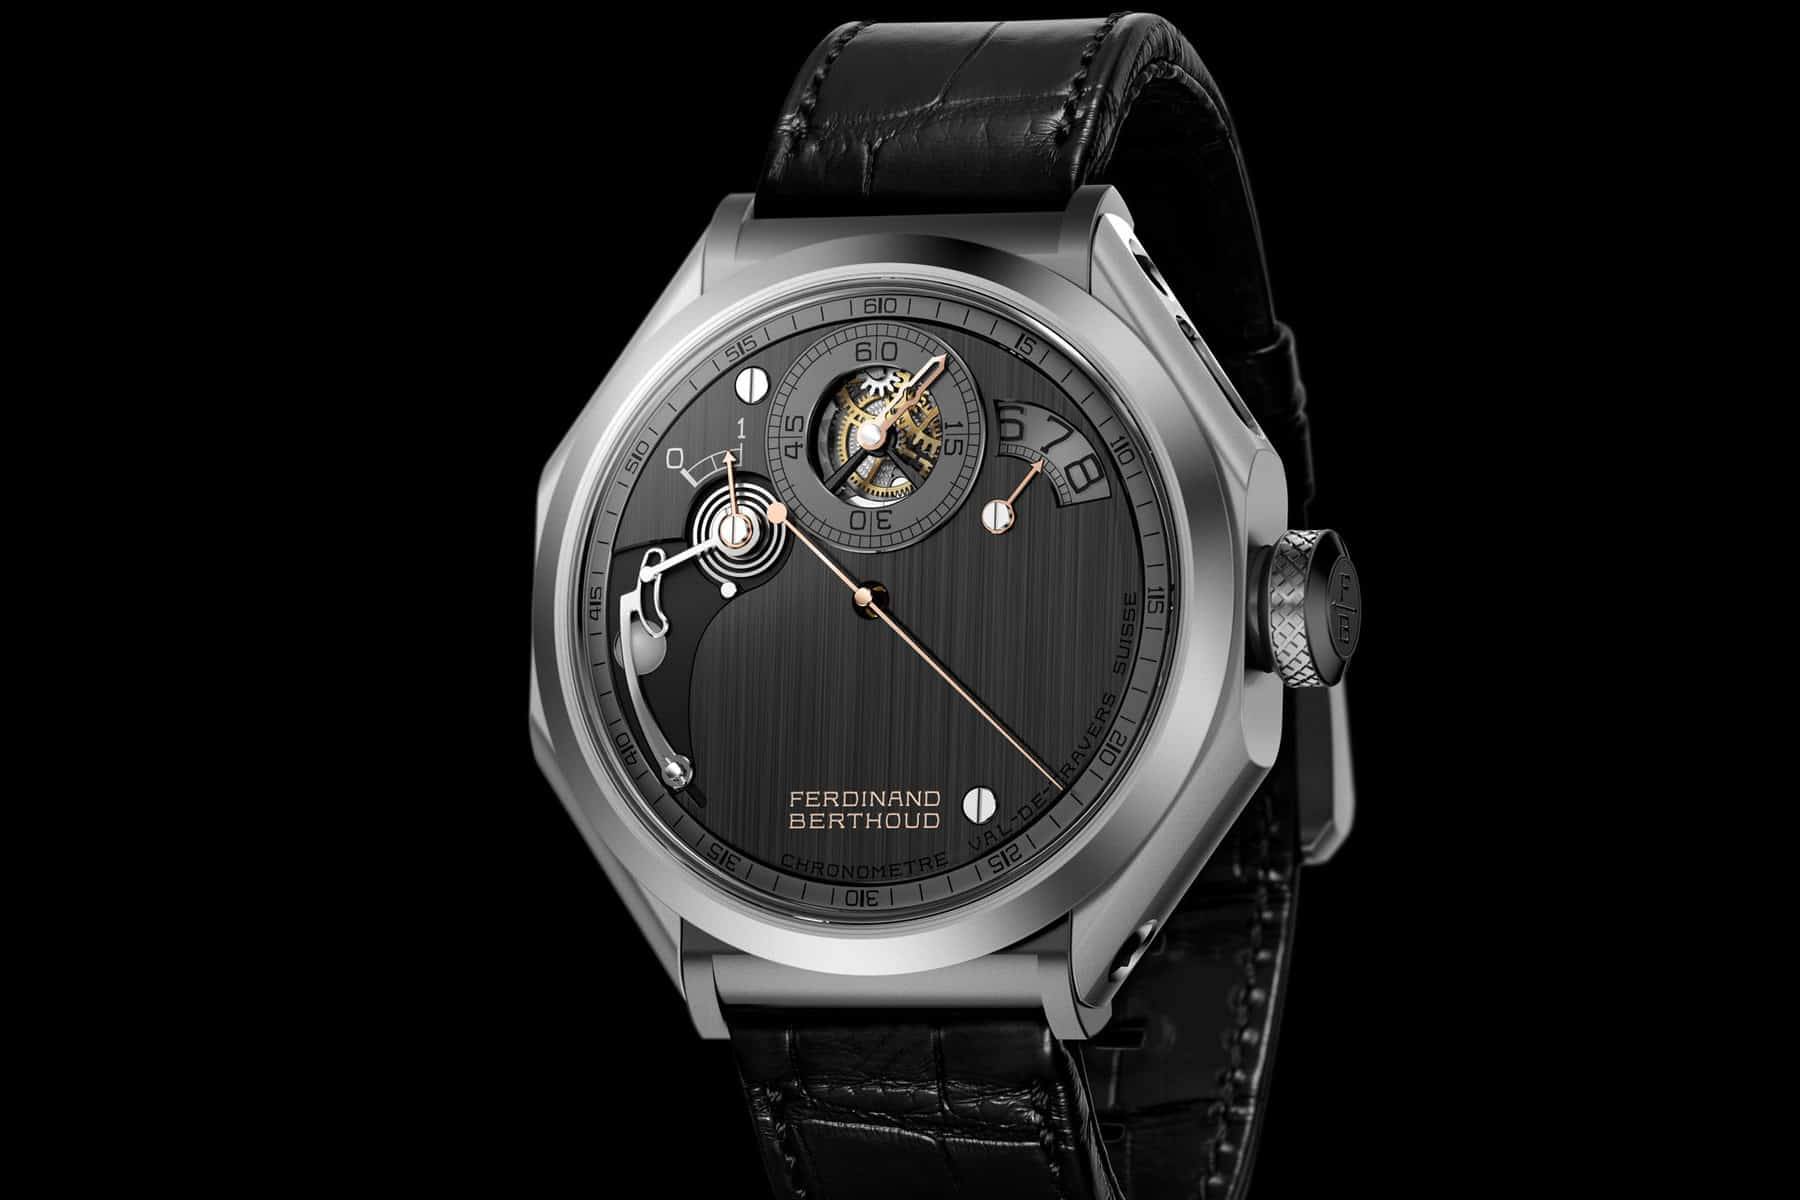 Introducing the Magical Chronomètre Ferdinand Berthoud FB 1R.6-1